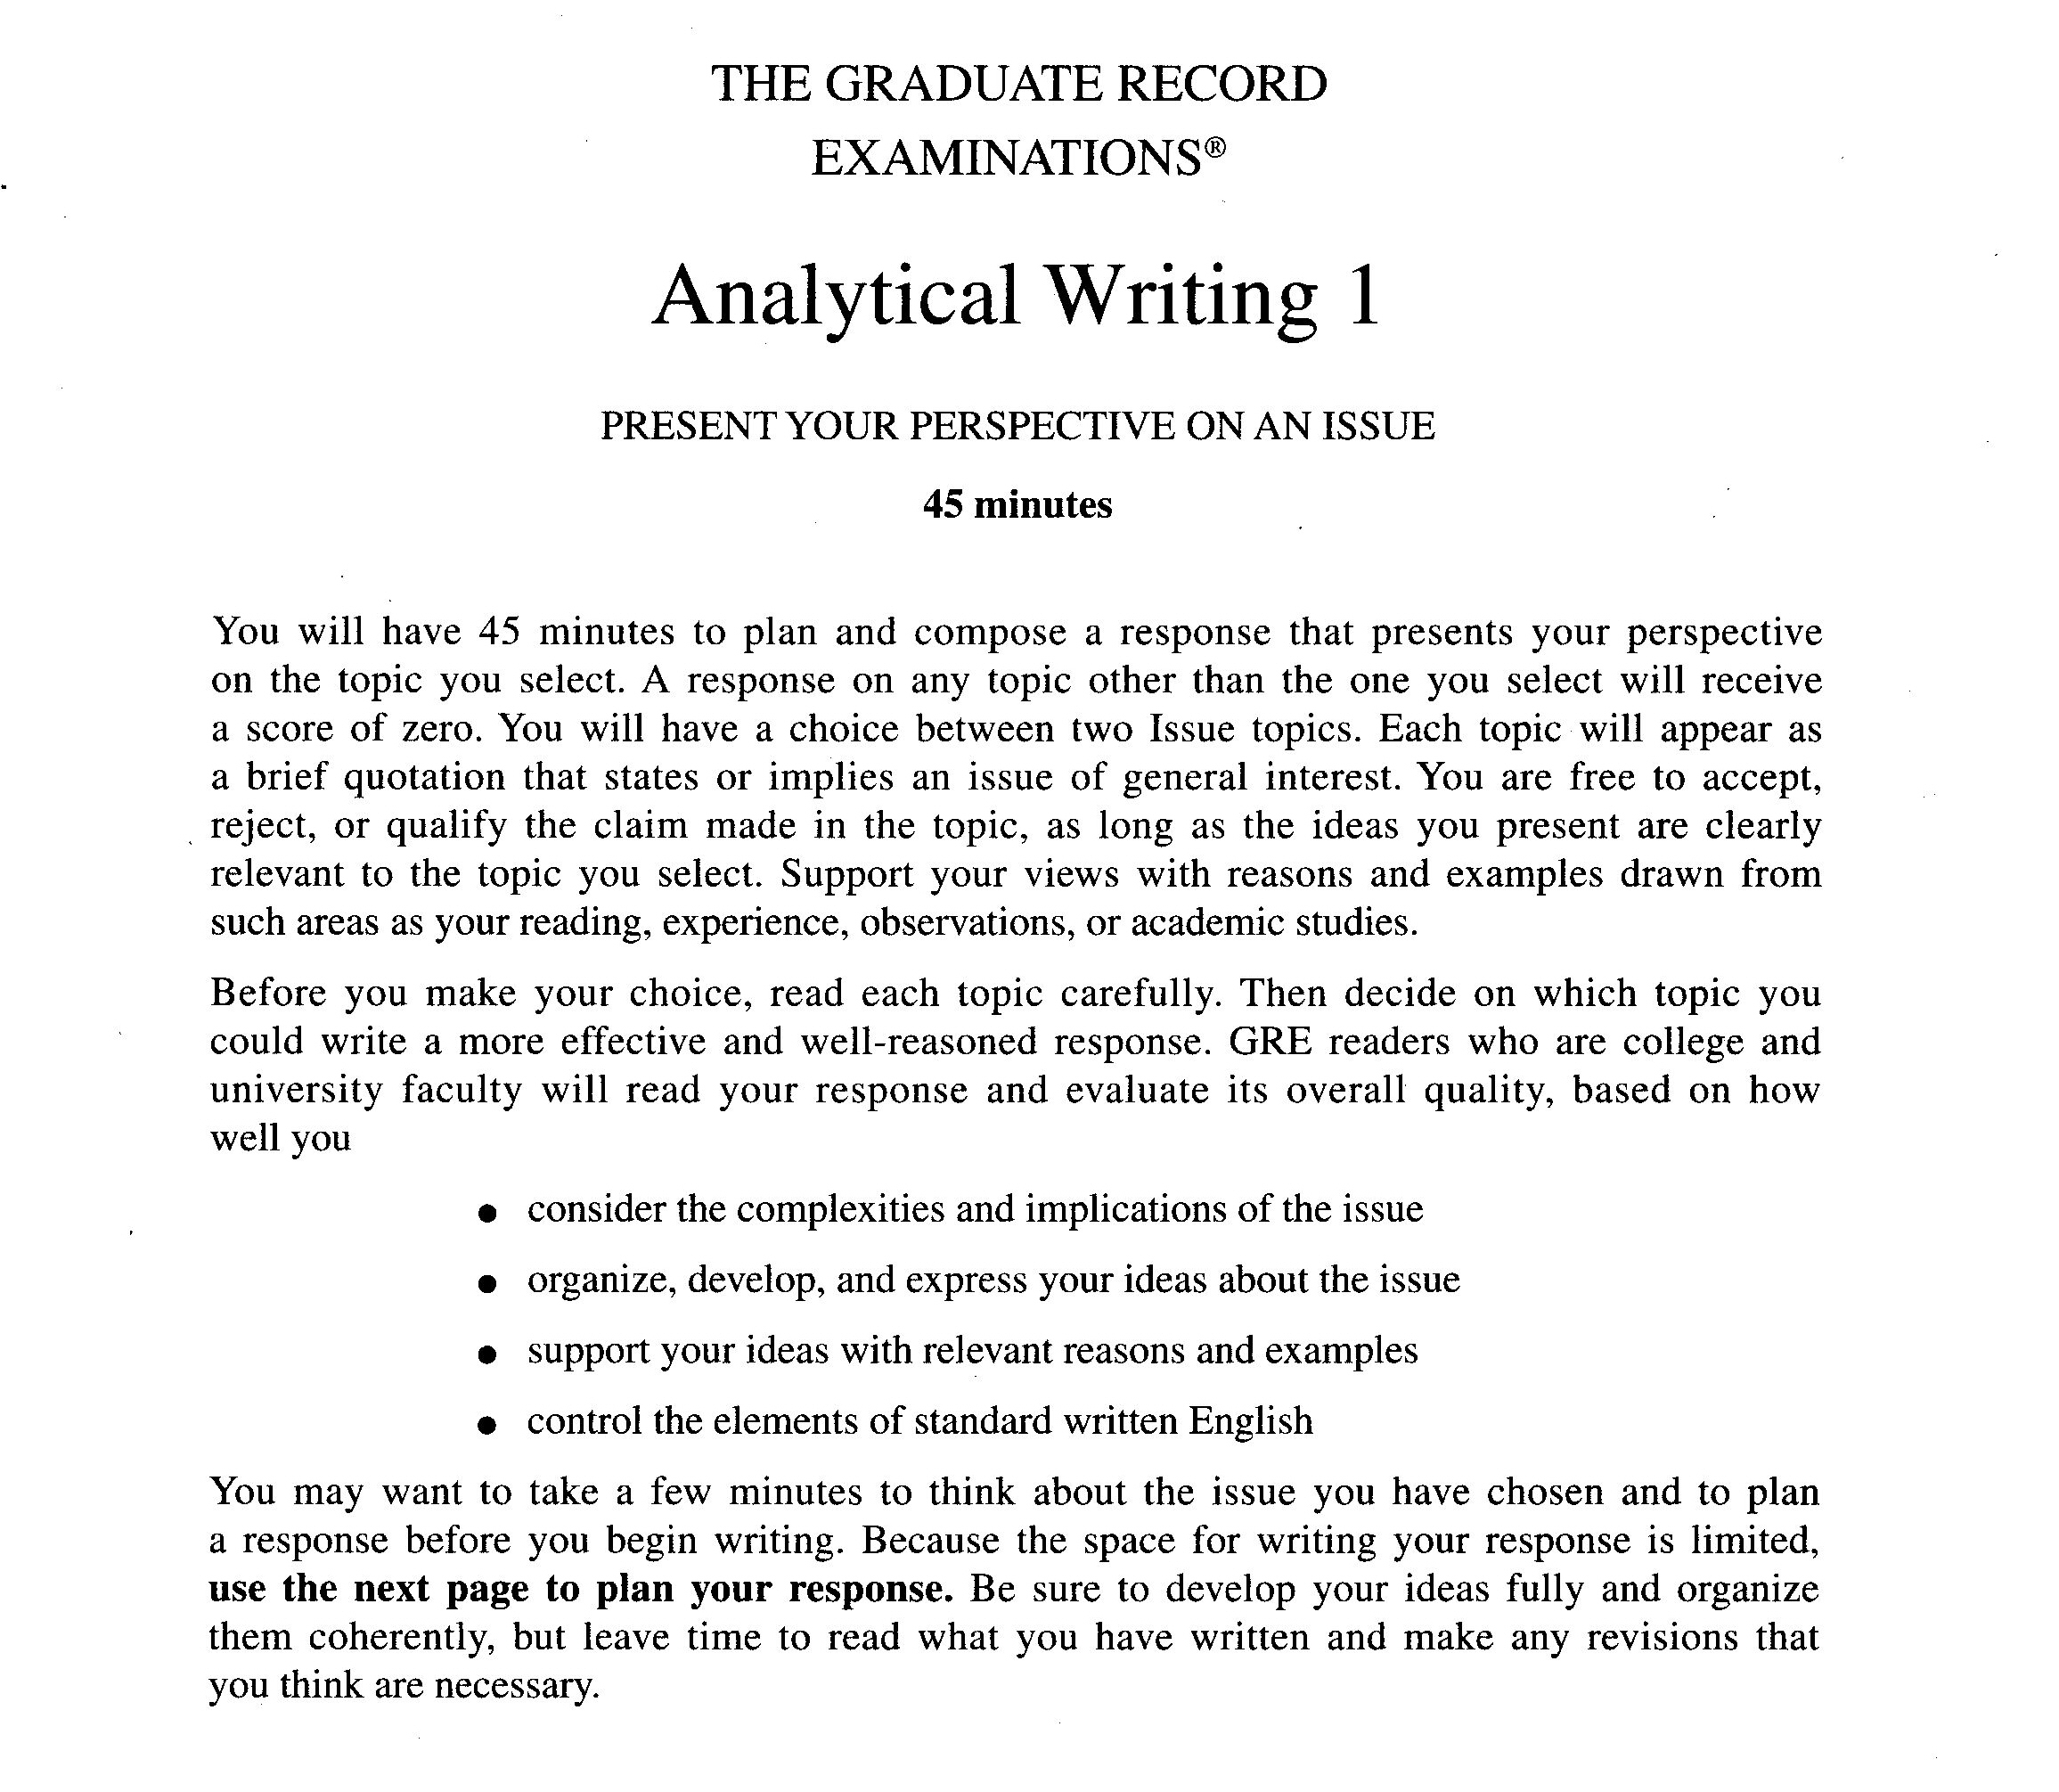 024 Essay Example Analytical20writing20issue20task20directions20for20gre201 Cheap Top Writing Service Canada Australia Reviews Full